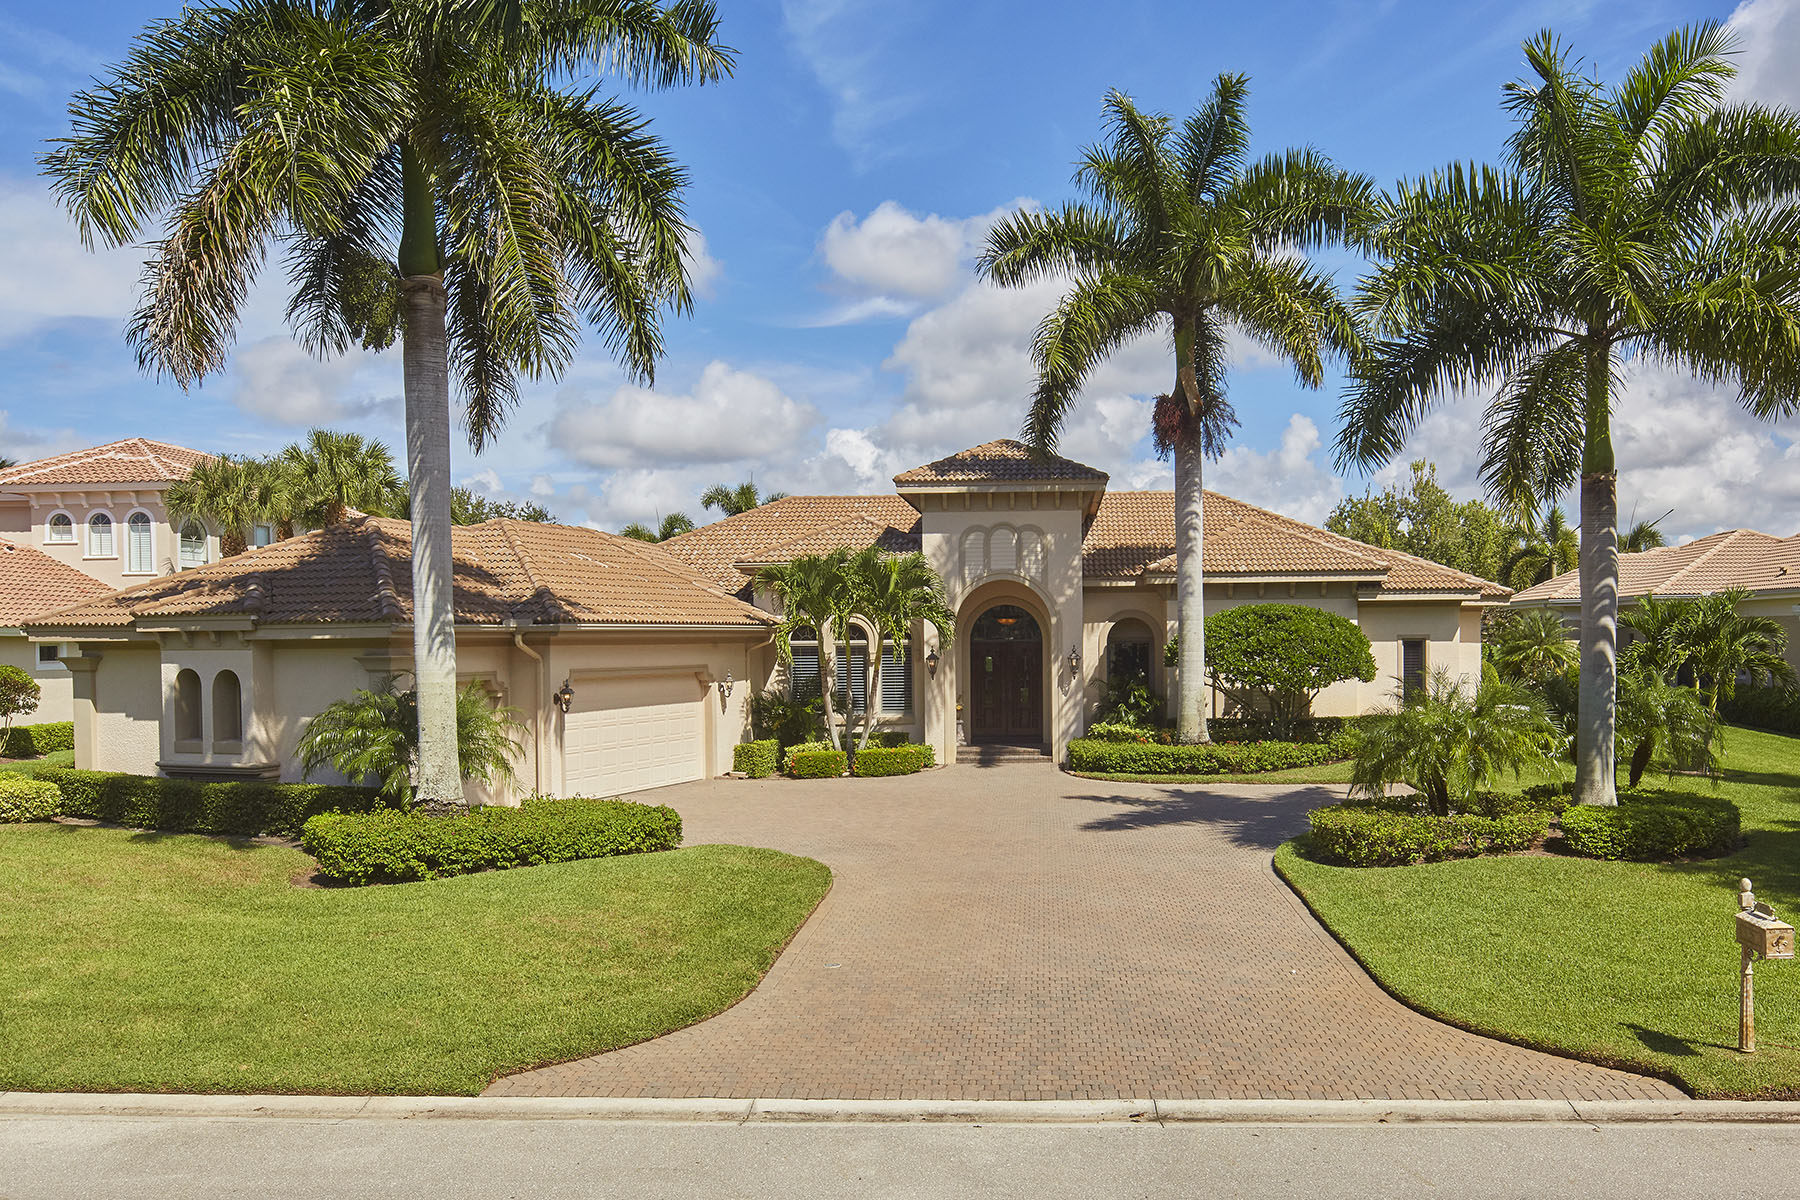 Single Family Homes for Sale at SHADOW WOOD - LAKE FOREST 9580 Lakebend Preserve Court Estero, Florida 34135 United States